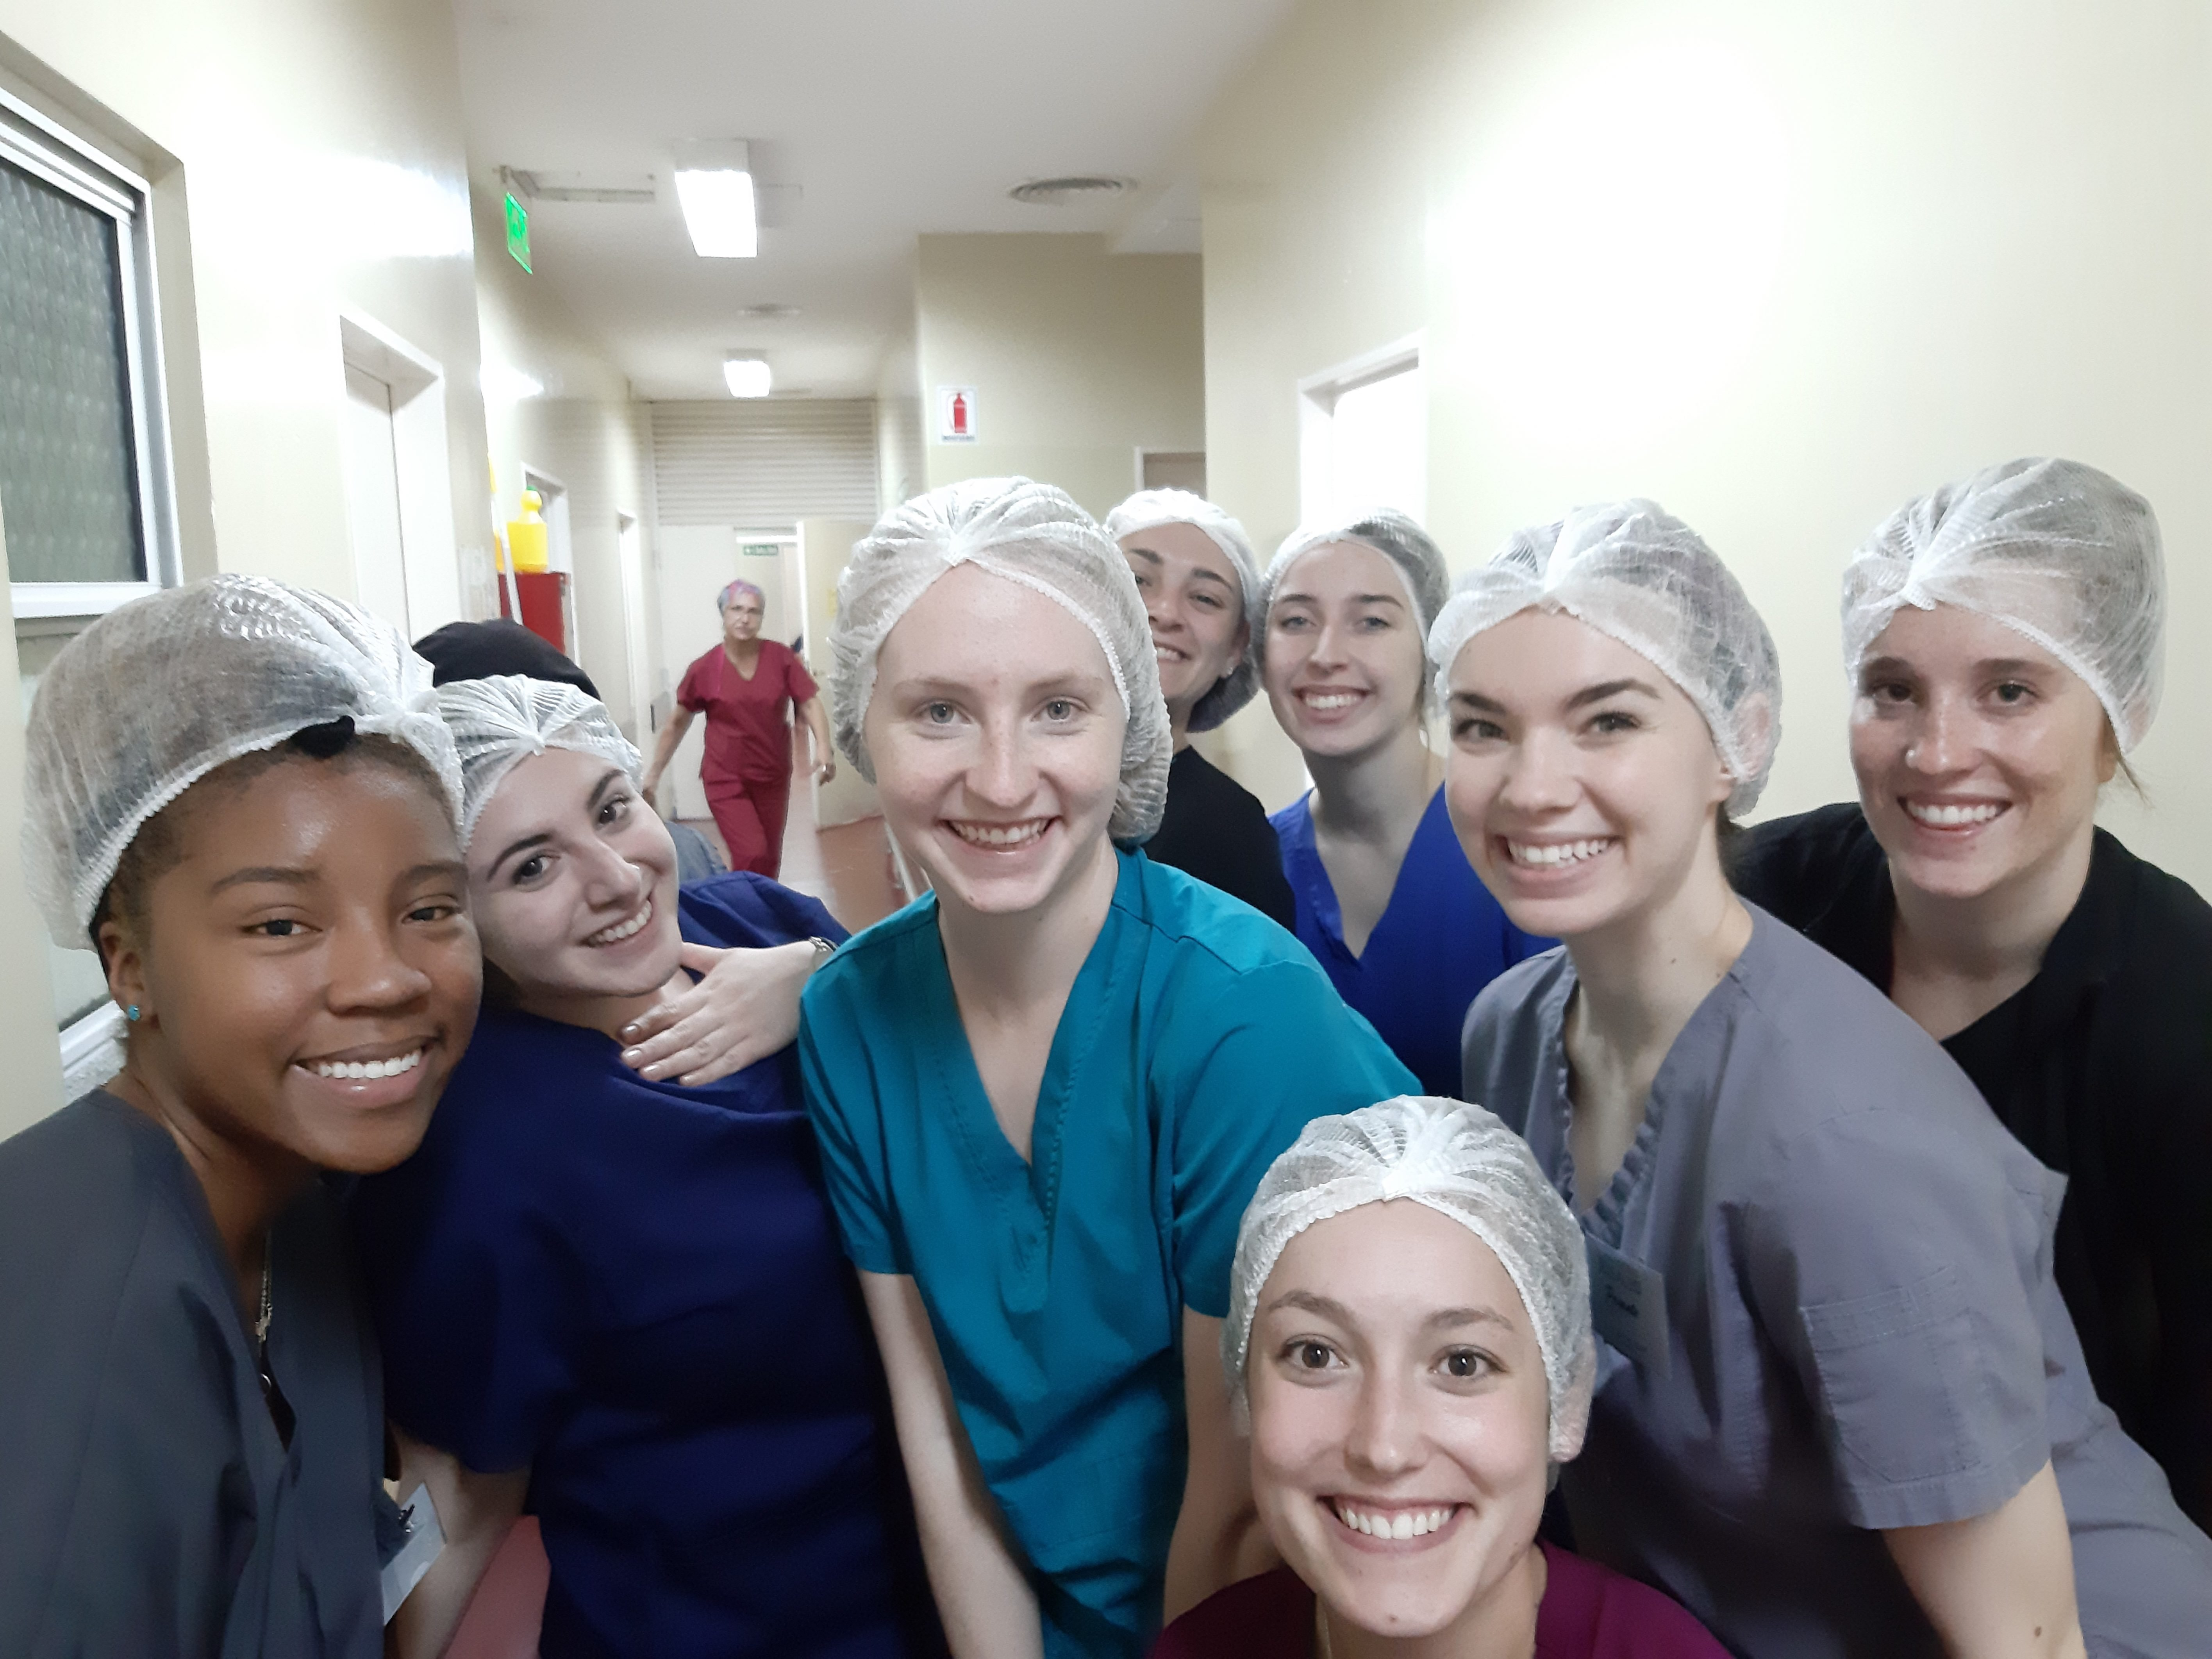 Shadowing is fun! Learn Spanish in a Hospital!